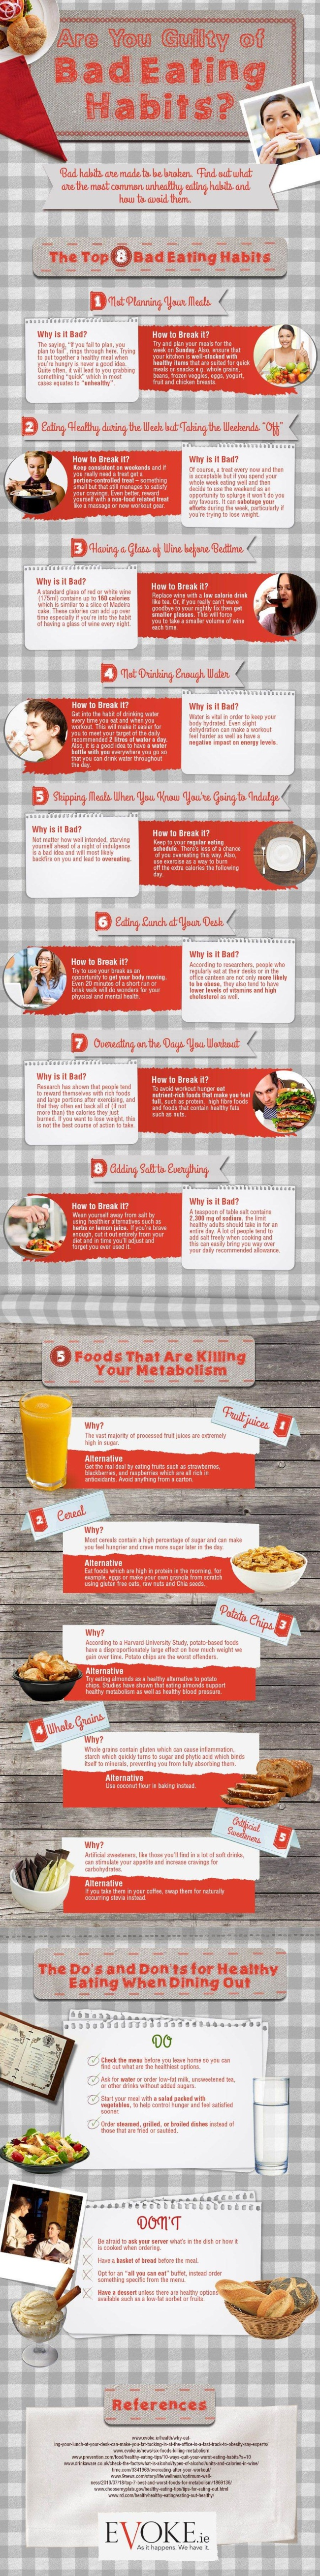 Bad-Eating-Habits-Infographic 650